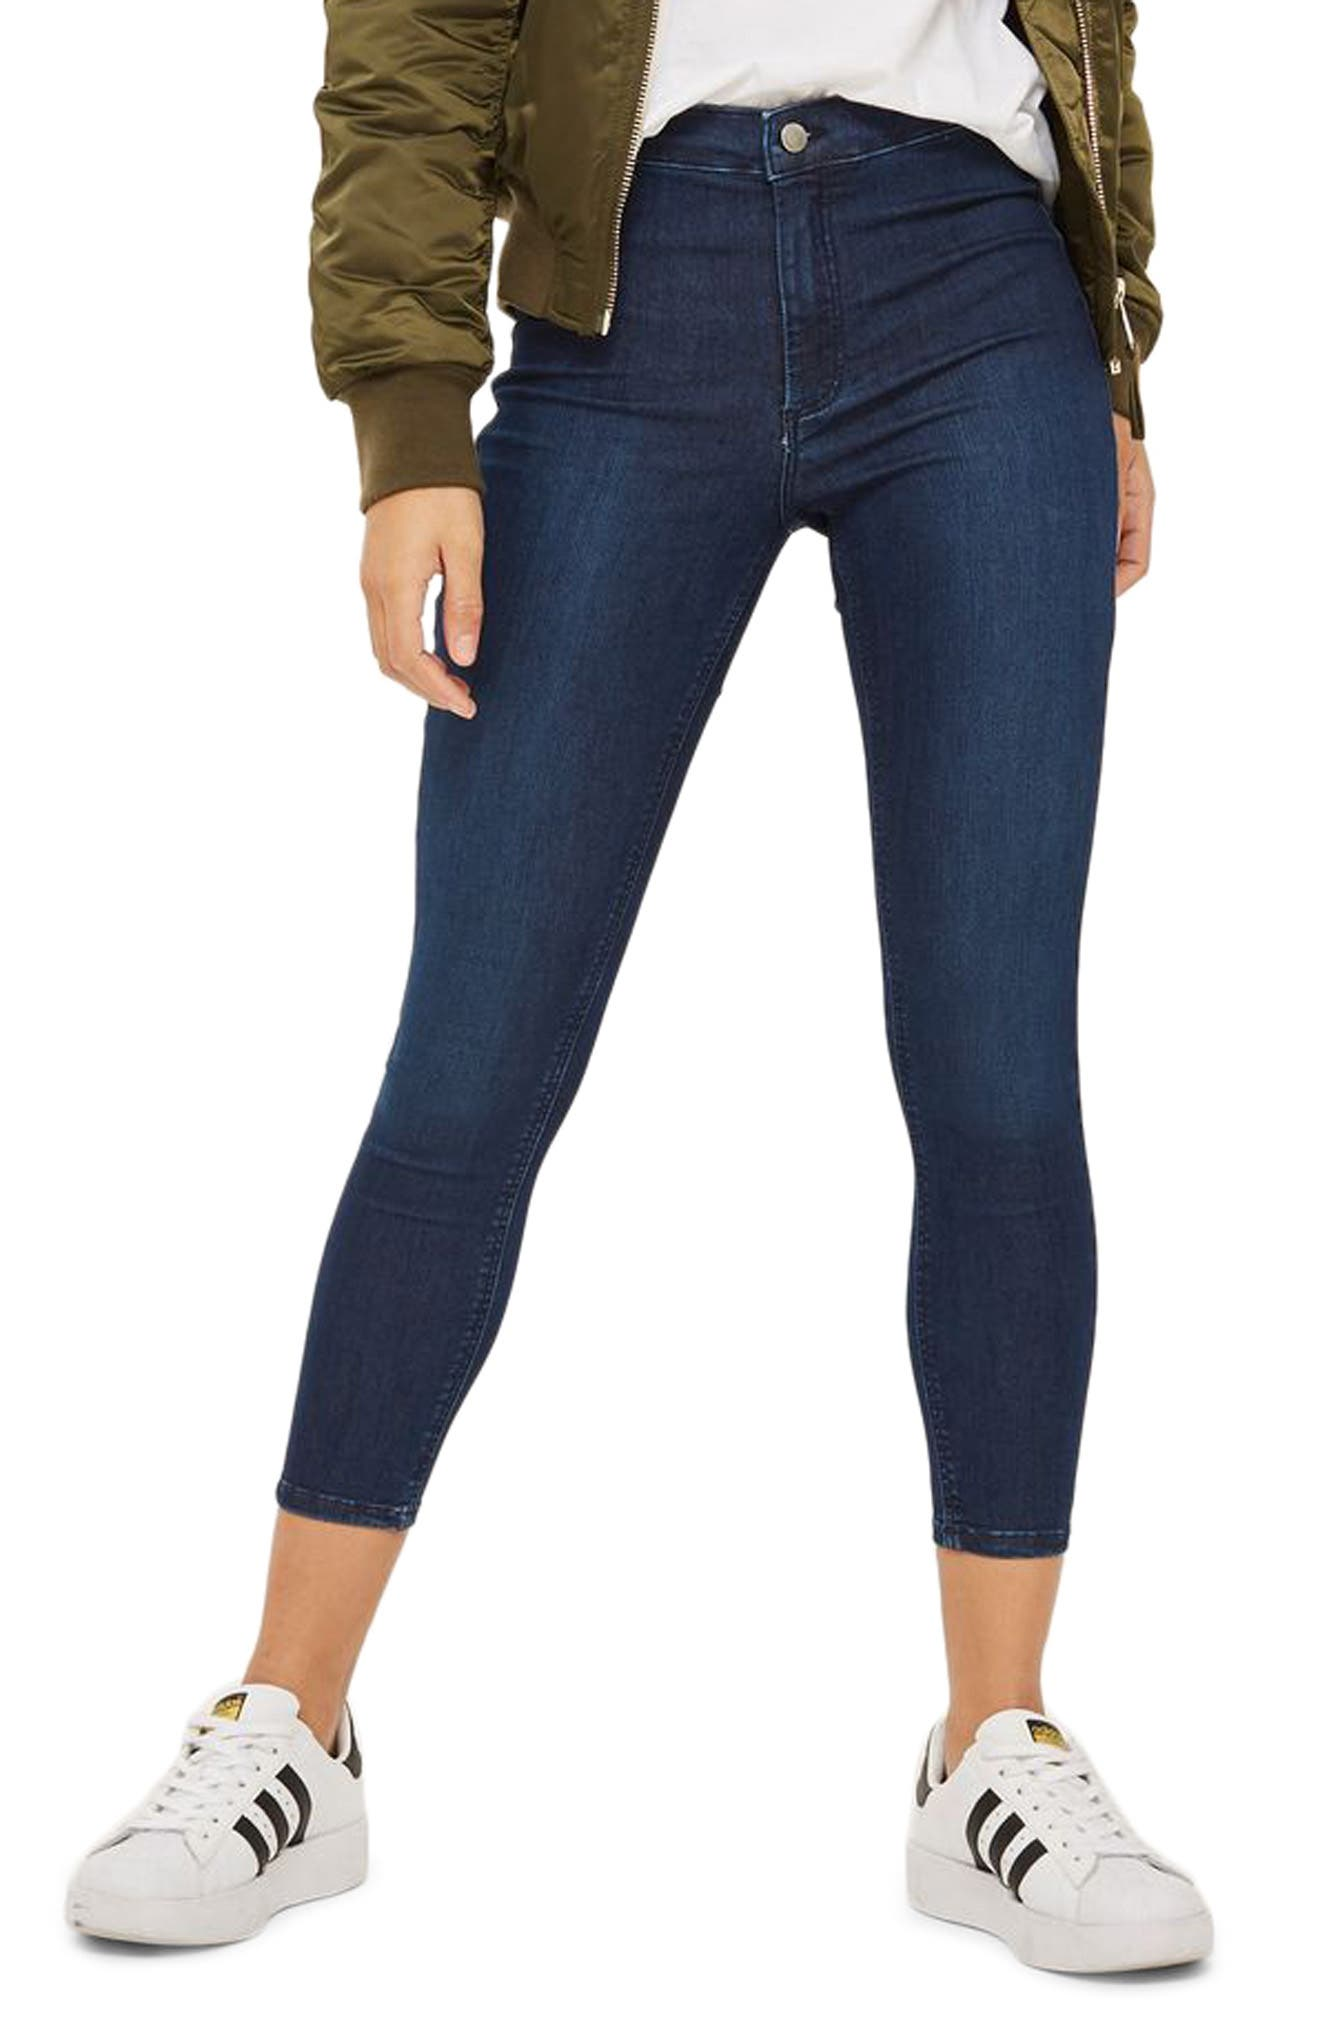 Alternate Image 1 Selected - Topshop Joni High Waist Skinny Jeans (Petite)